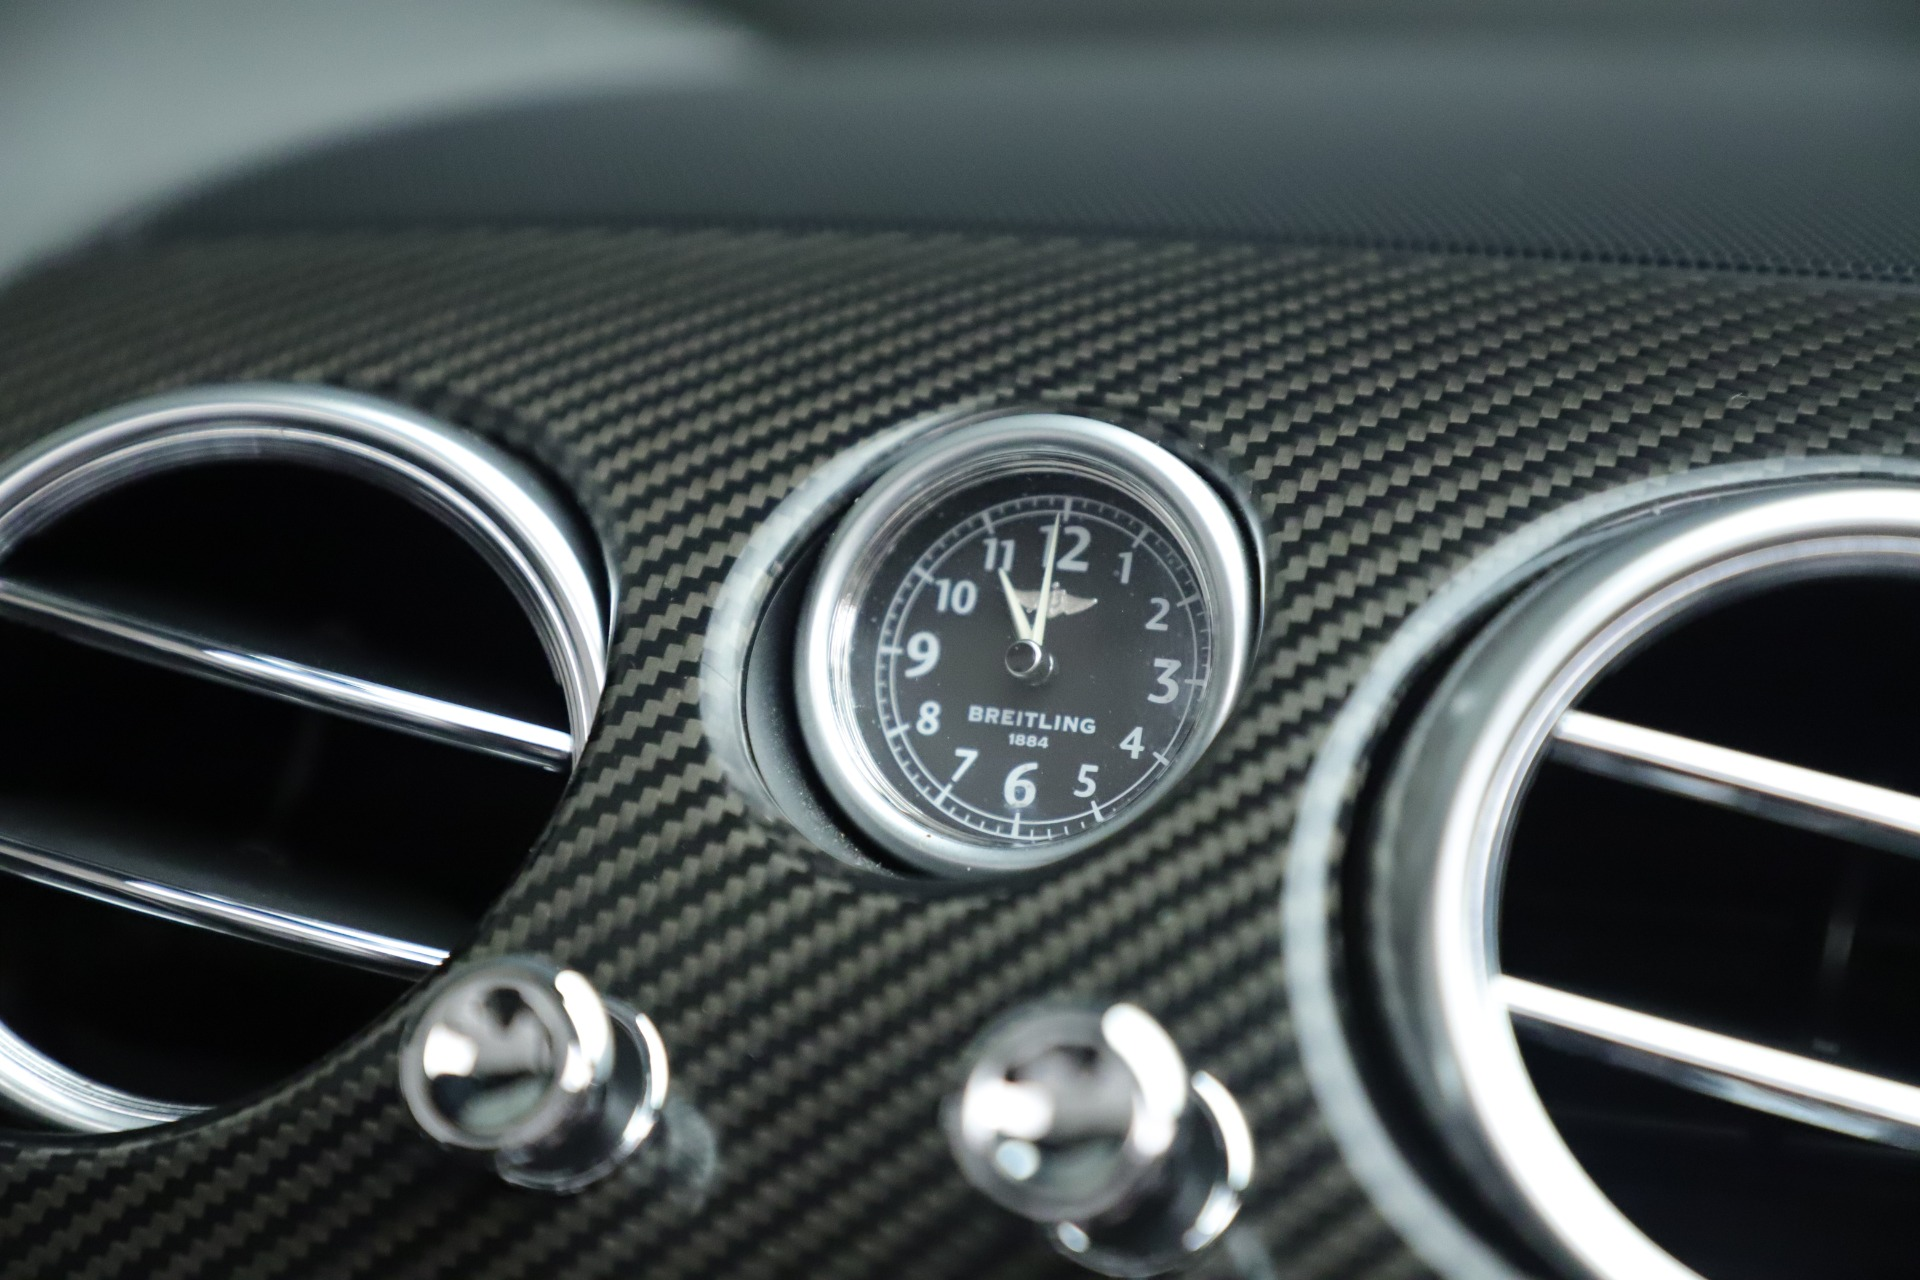 Used 2012 Bentley Continental GT Supersports For Sale In Westport, CT 3214_p26